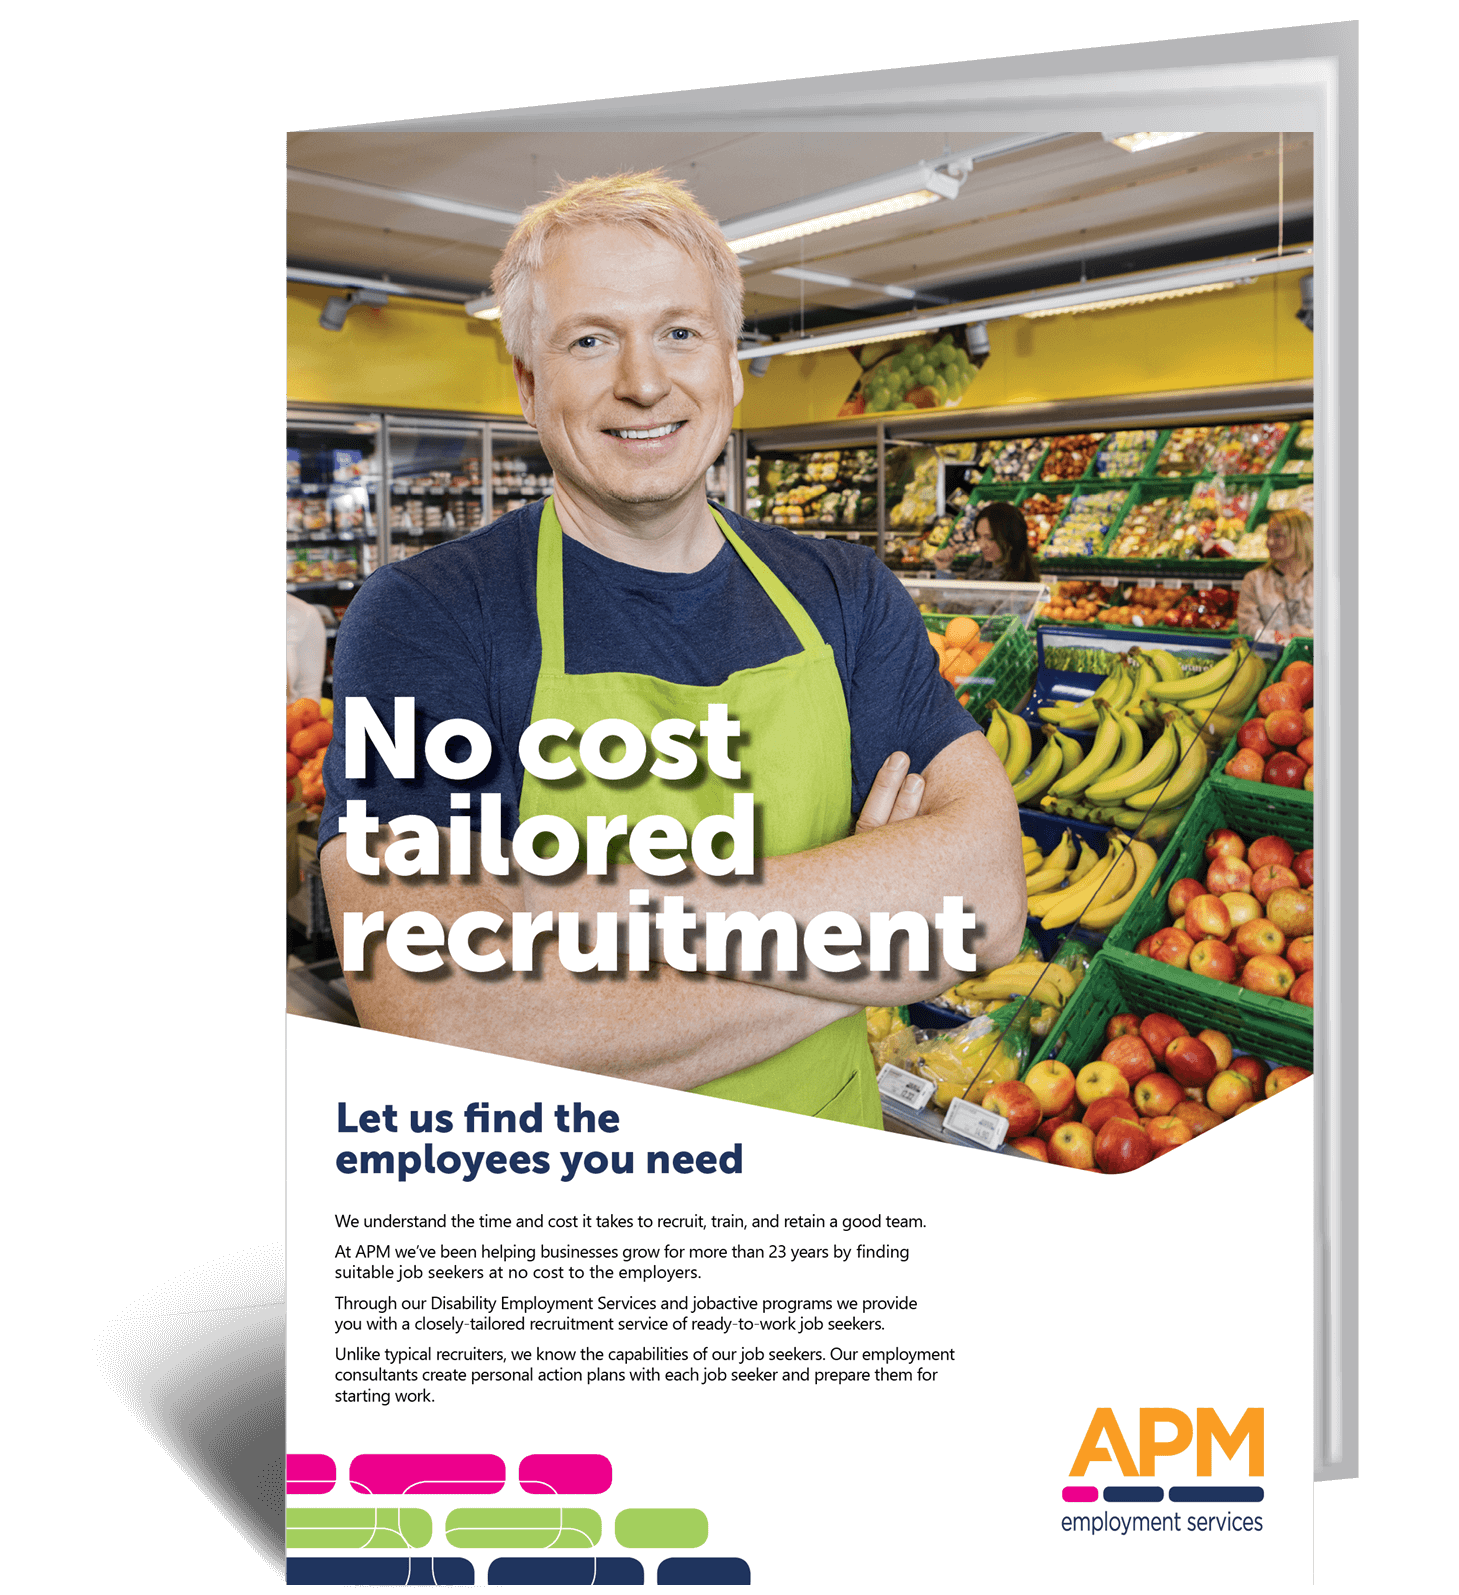 Need staff fast? See how you save time and money with our no cost recruitment service image